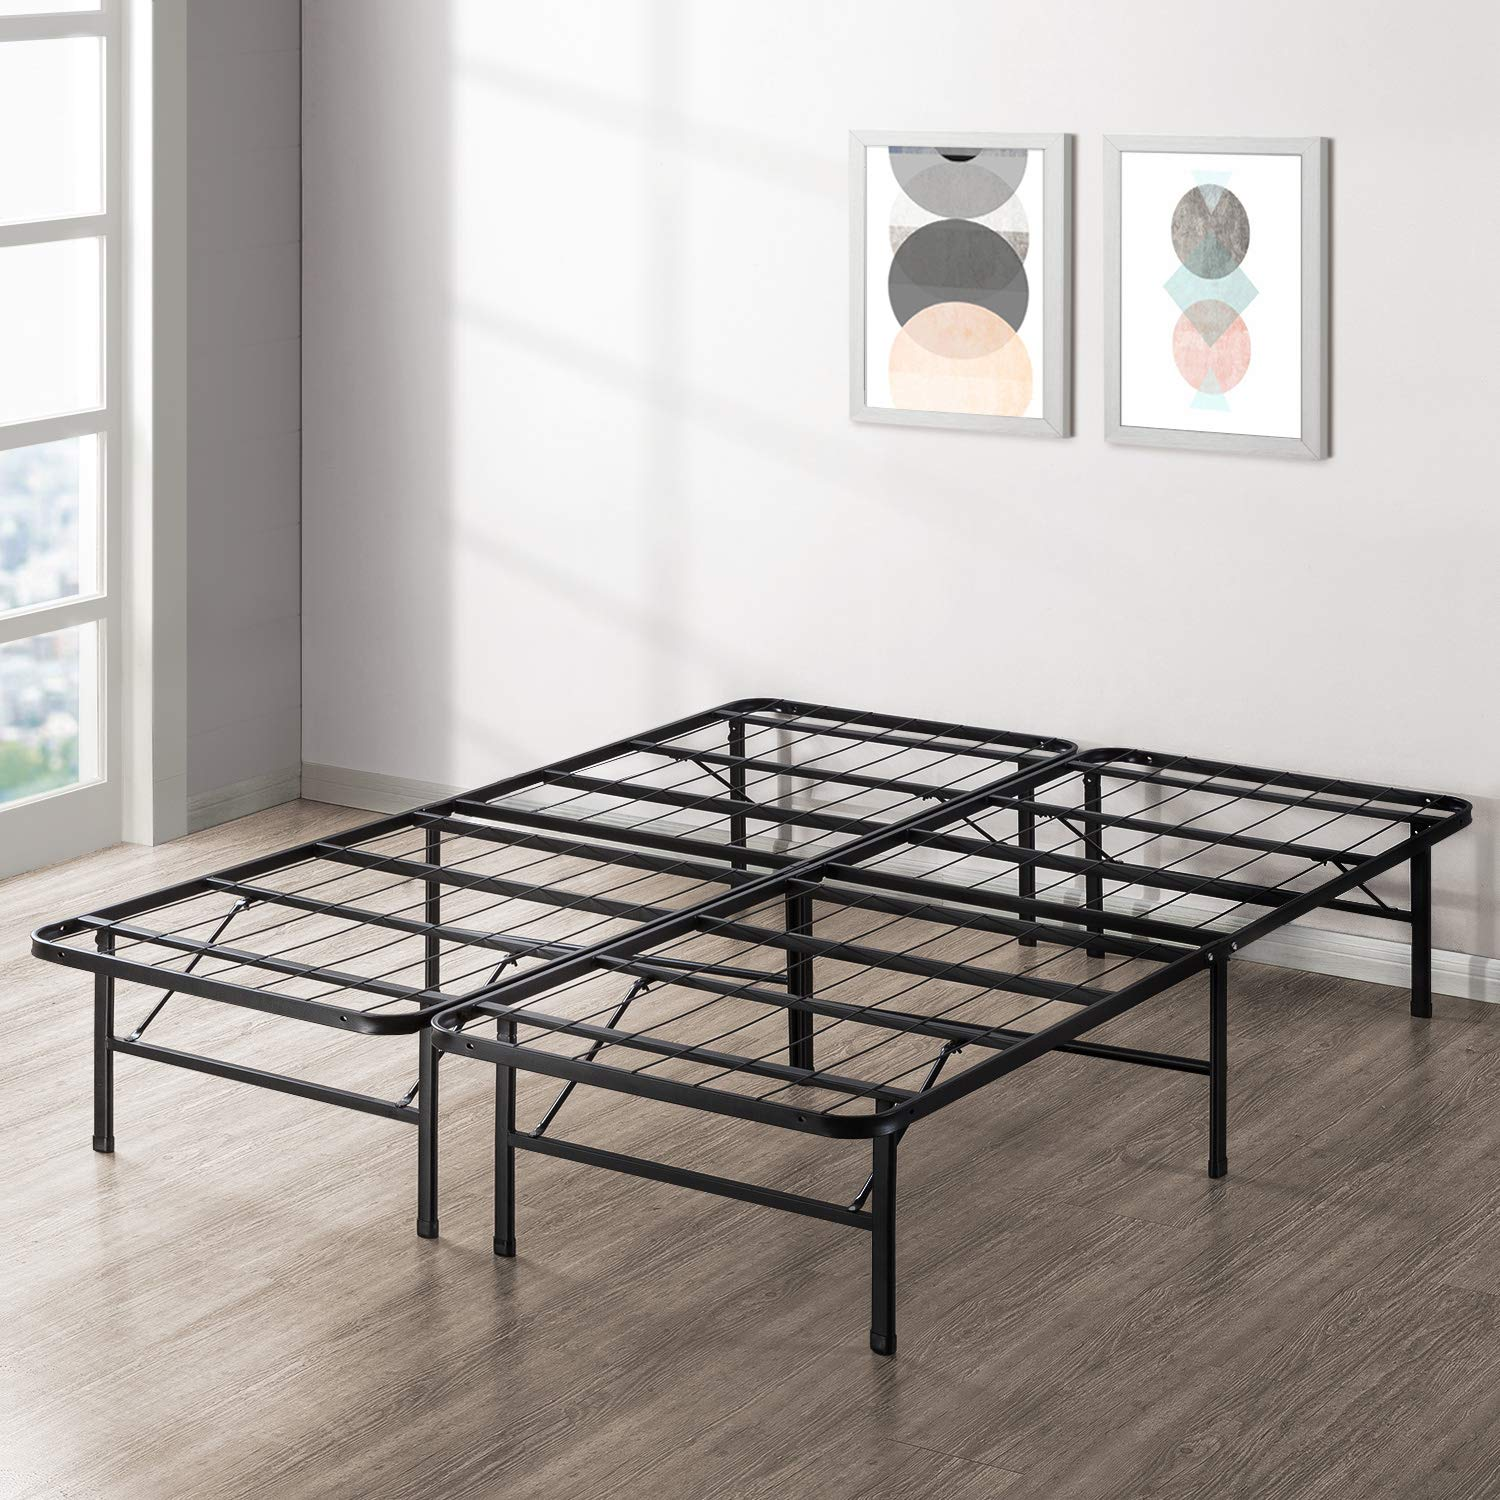 Best Price Mattress New Innovated Box Spring Metal Bed Frame, Queen Misc.